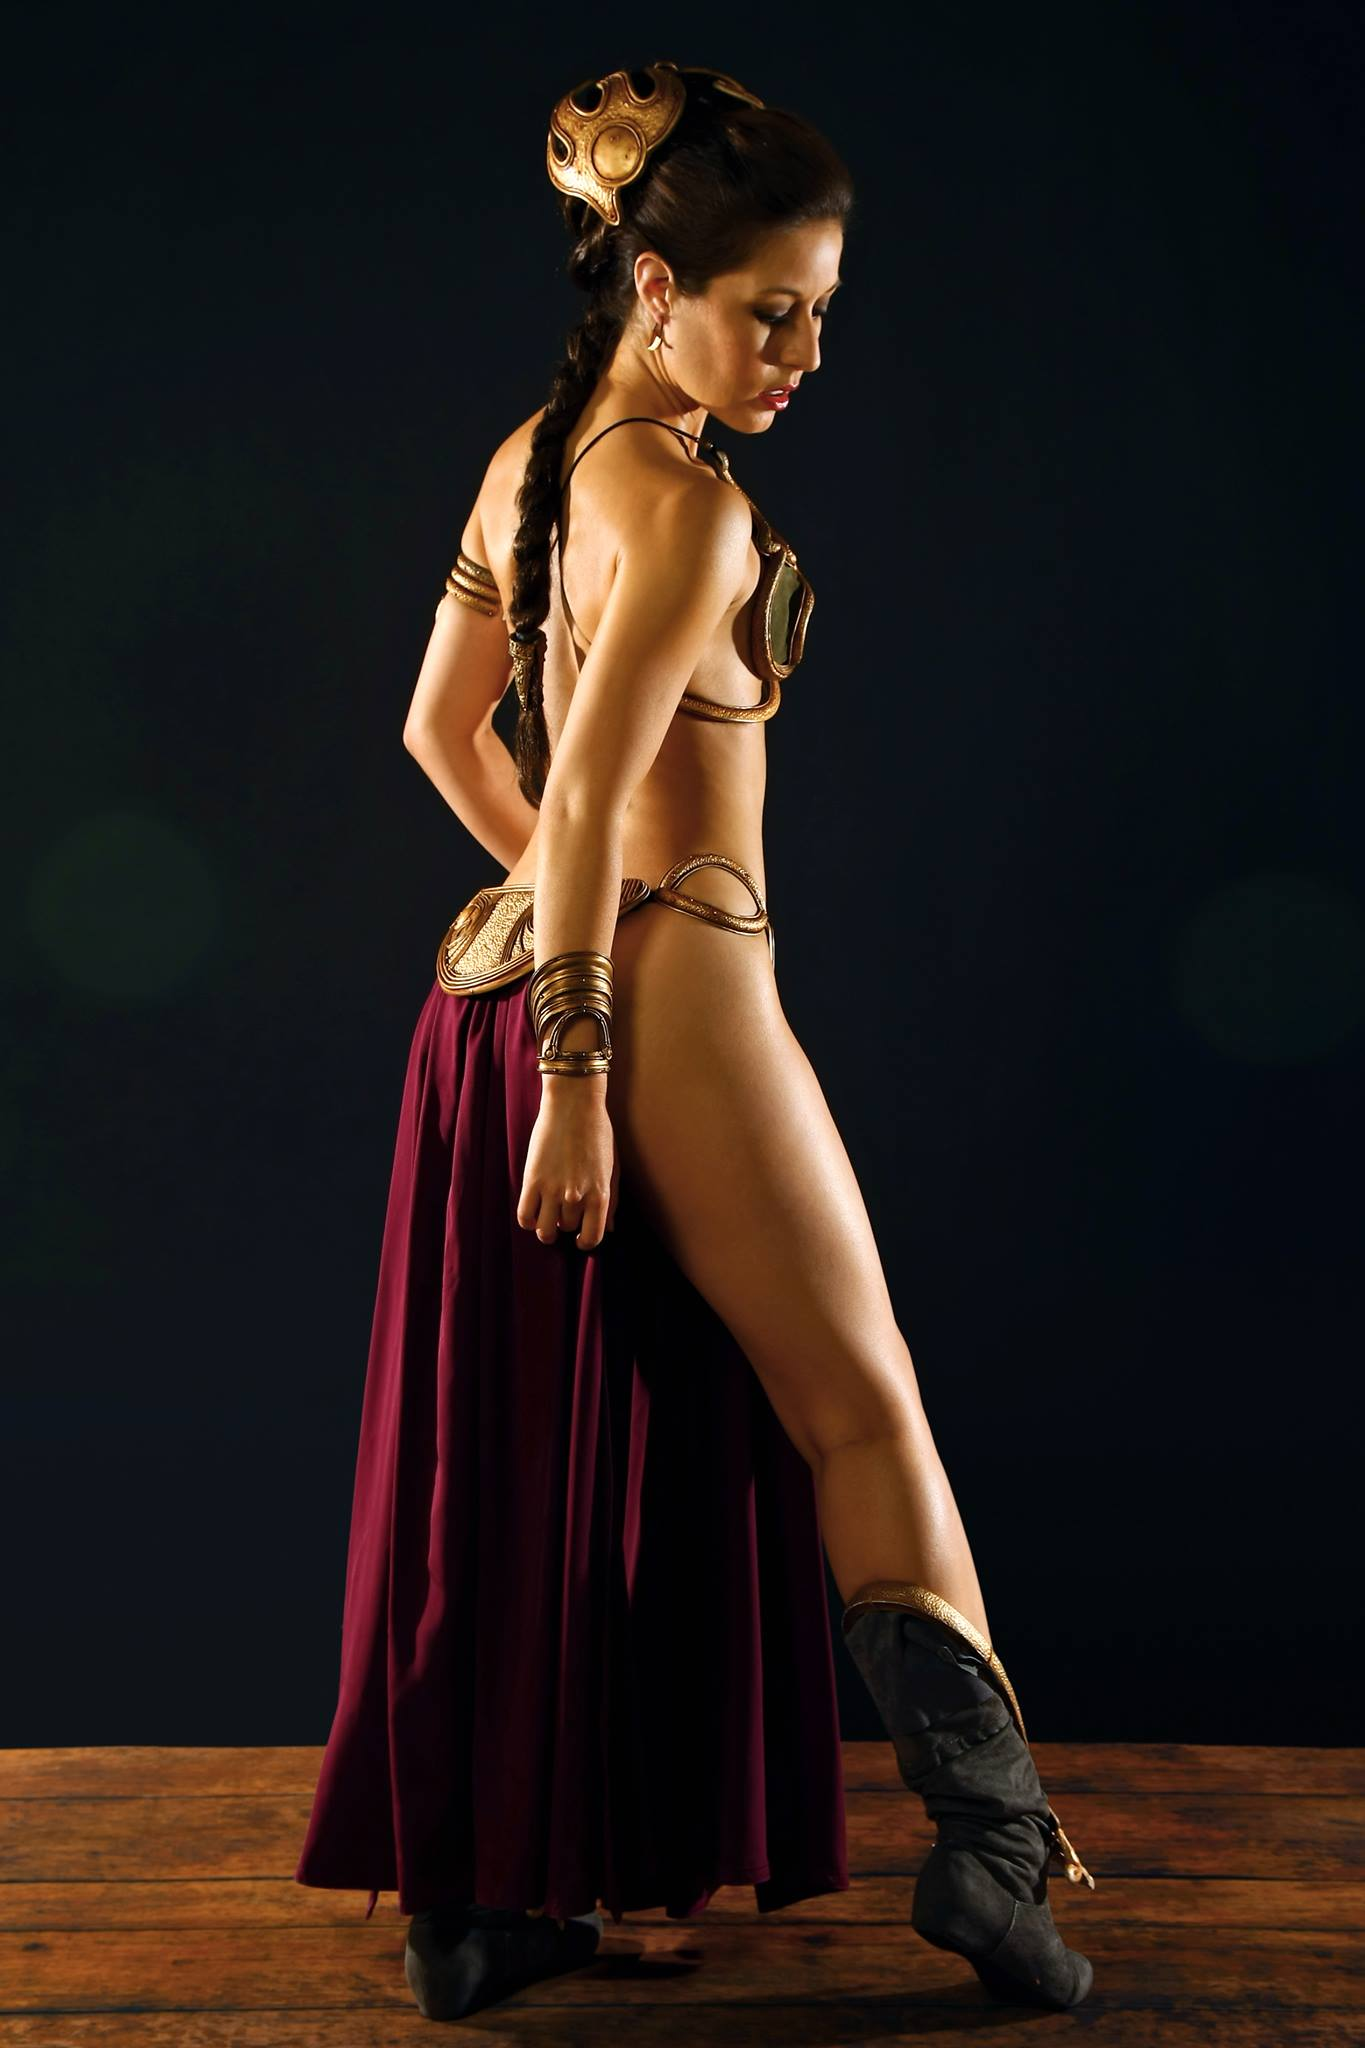 Women Wearing Revealing Warrior Outfits - Page 16 Scruffy-rebel-cosplay-princess-leia